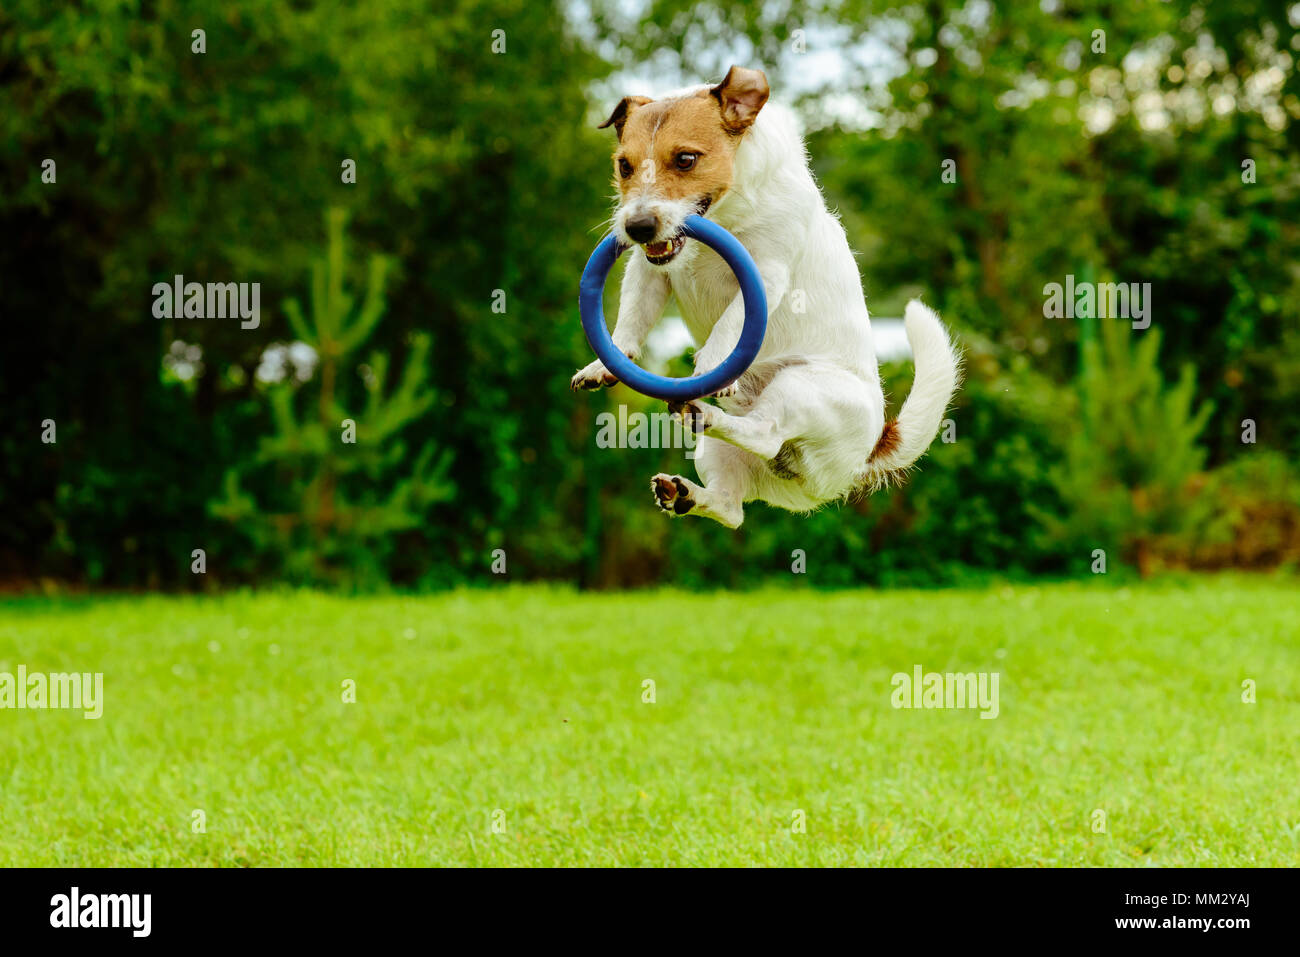 Funny dog in jumping motion  catching ring toss toy - Stock Image